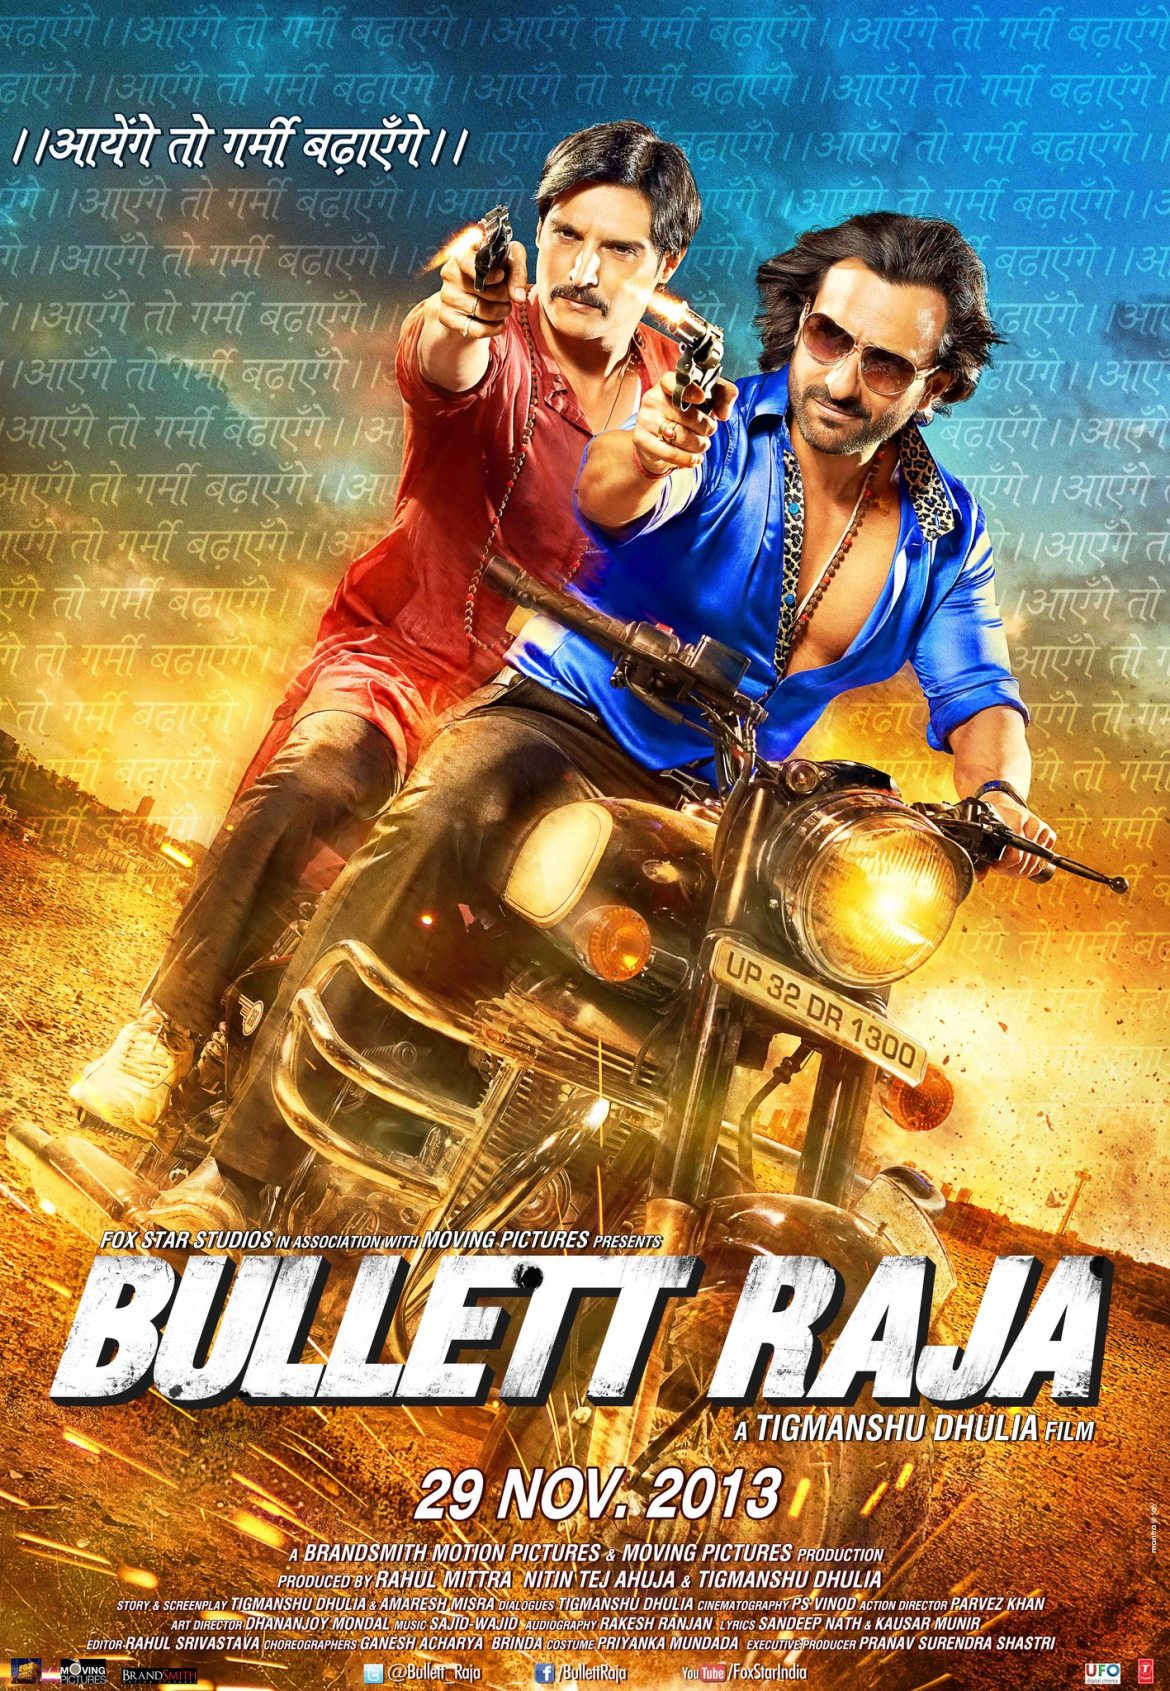 Bullett Raja Movie Dialogues (All Dialogues)